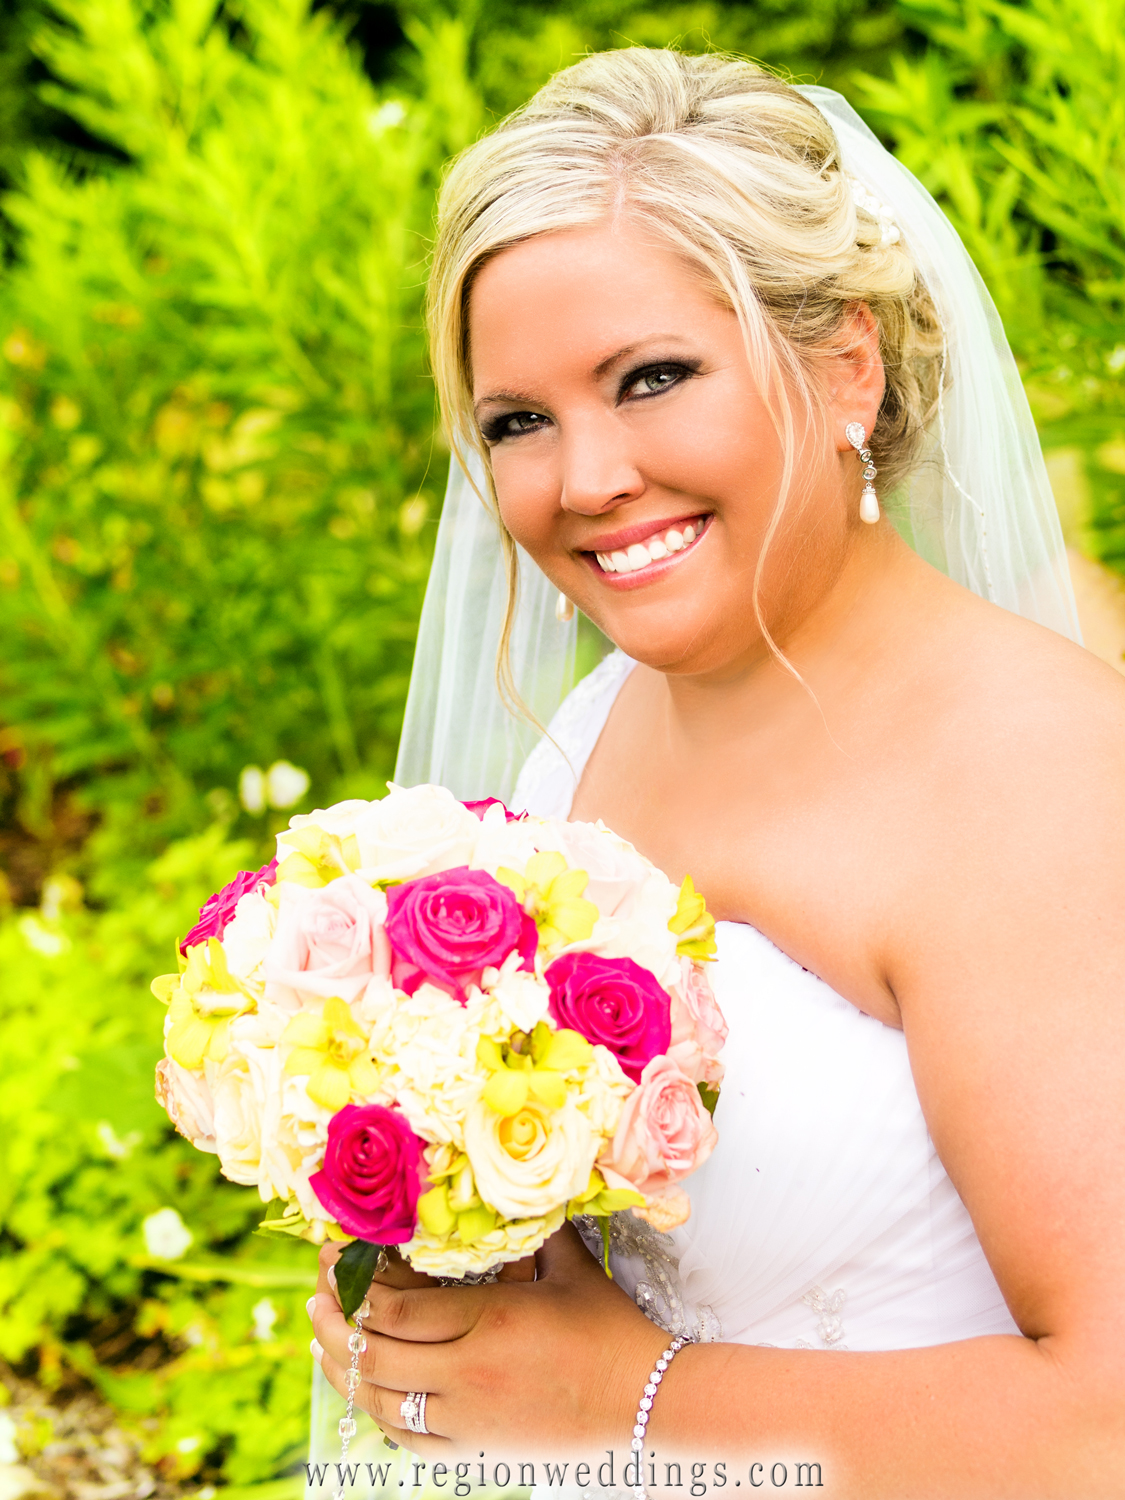 Bride holds her summer bouquet of wedding flowers in the garden at Aberdeen Manor in Valparaiso, Indiana just after her wedding.